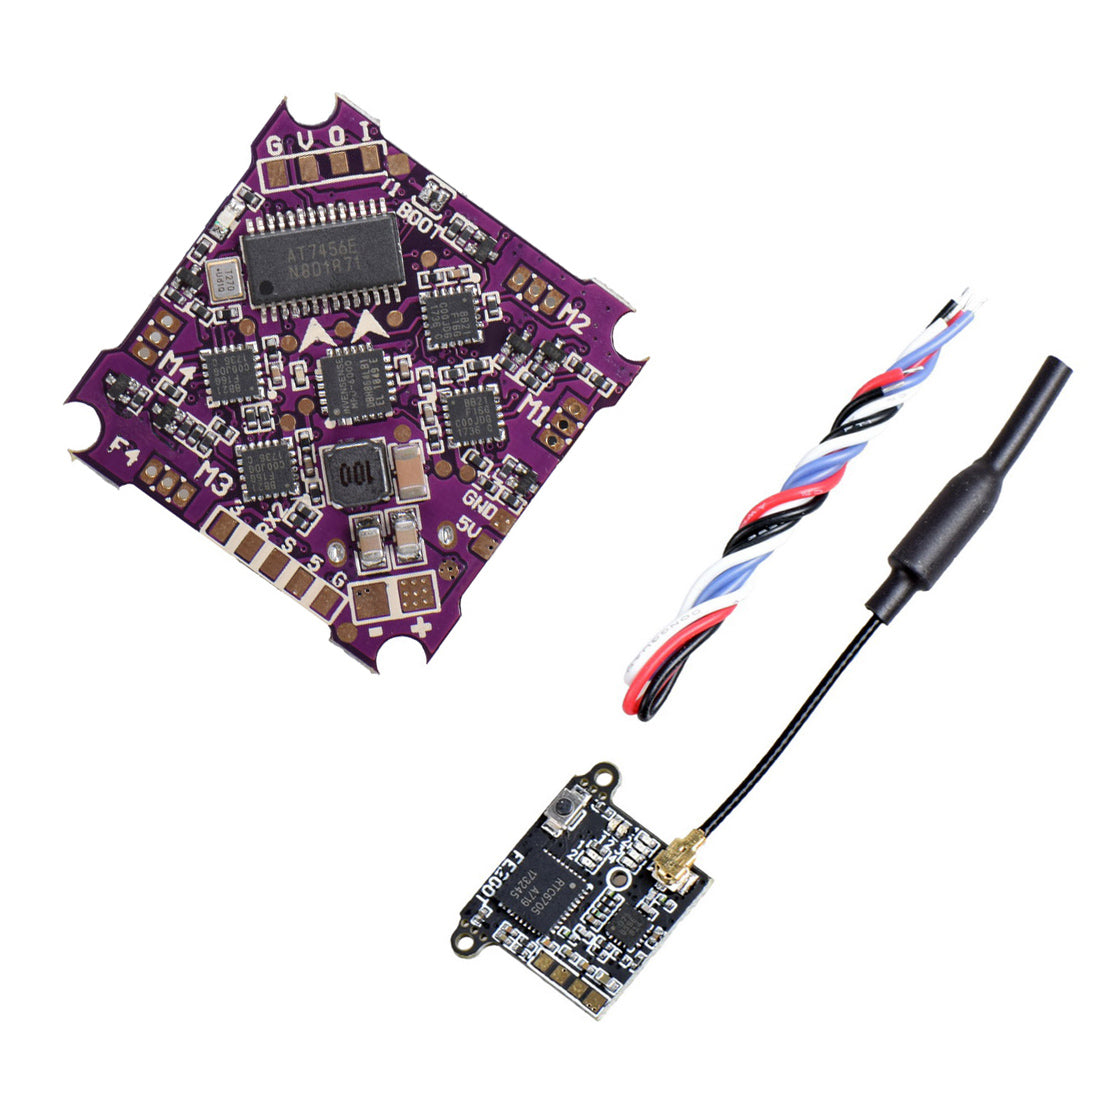 QwinOut Play F4 Whoop Flight Controller & 4in1 ESC FE200T 5 8G 40CH FPV  Transmitter VTX for DIY RC Drone Kit FPV Racing Quadcopter